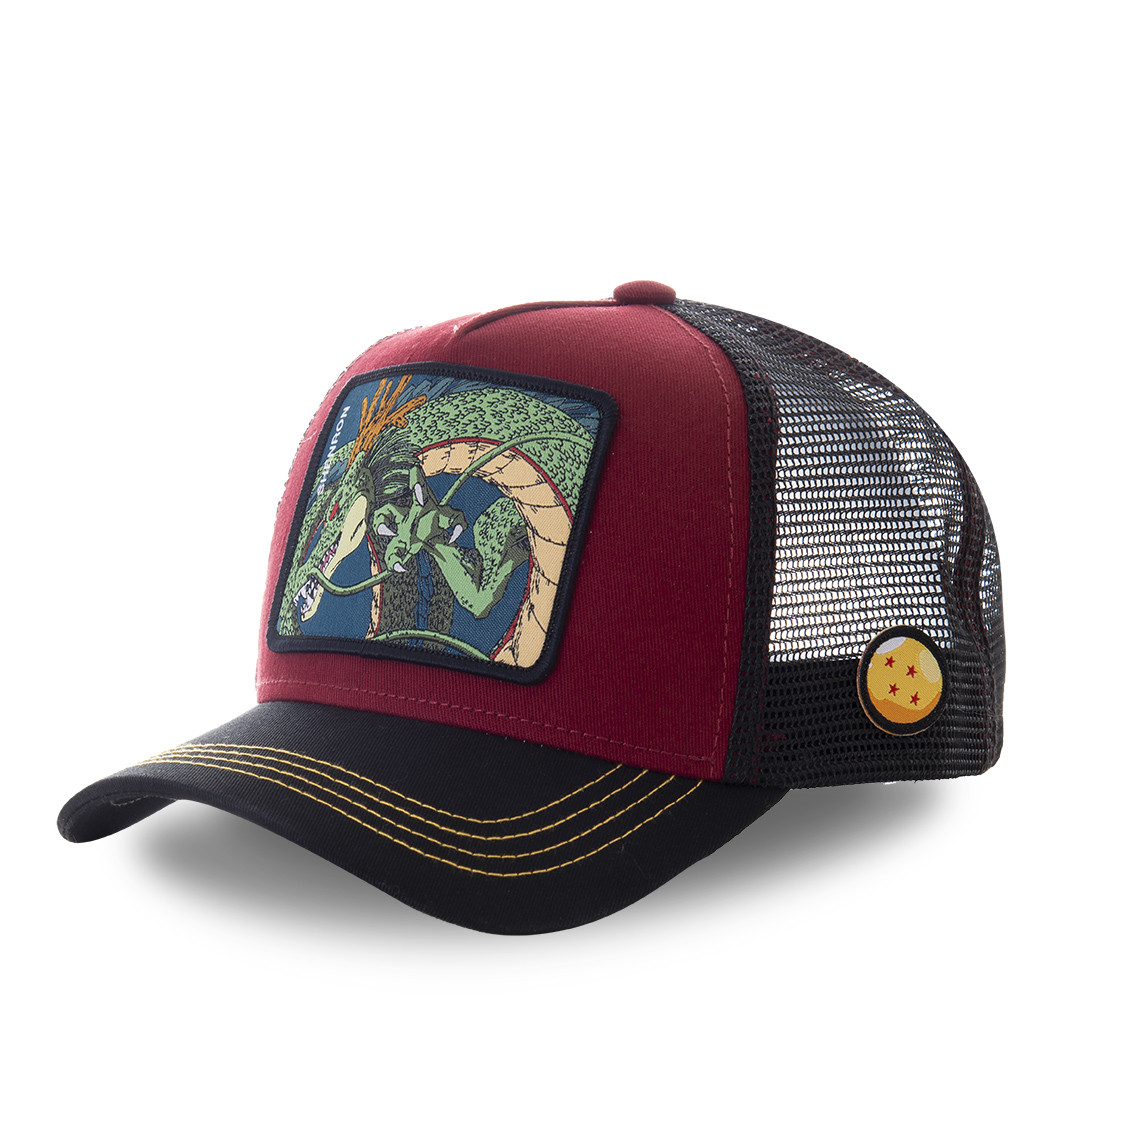 Casquette capslab dragon ball z 3 shenron bordeau (photo)